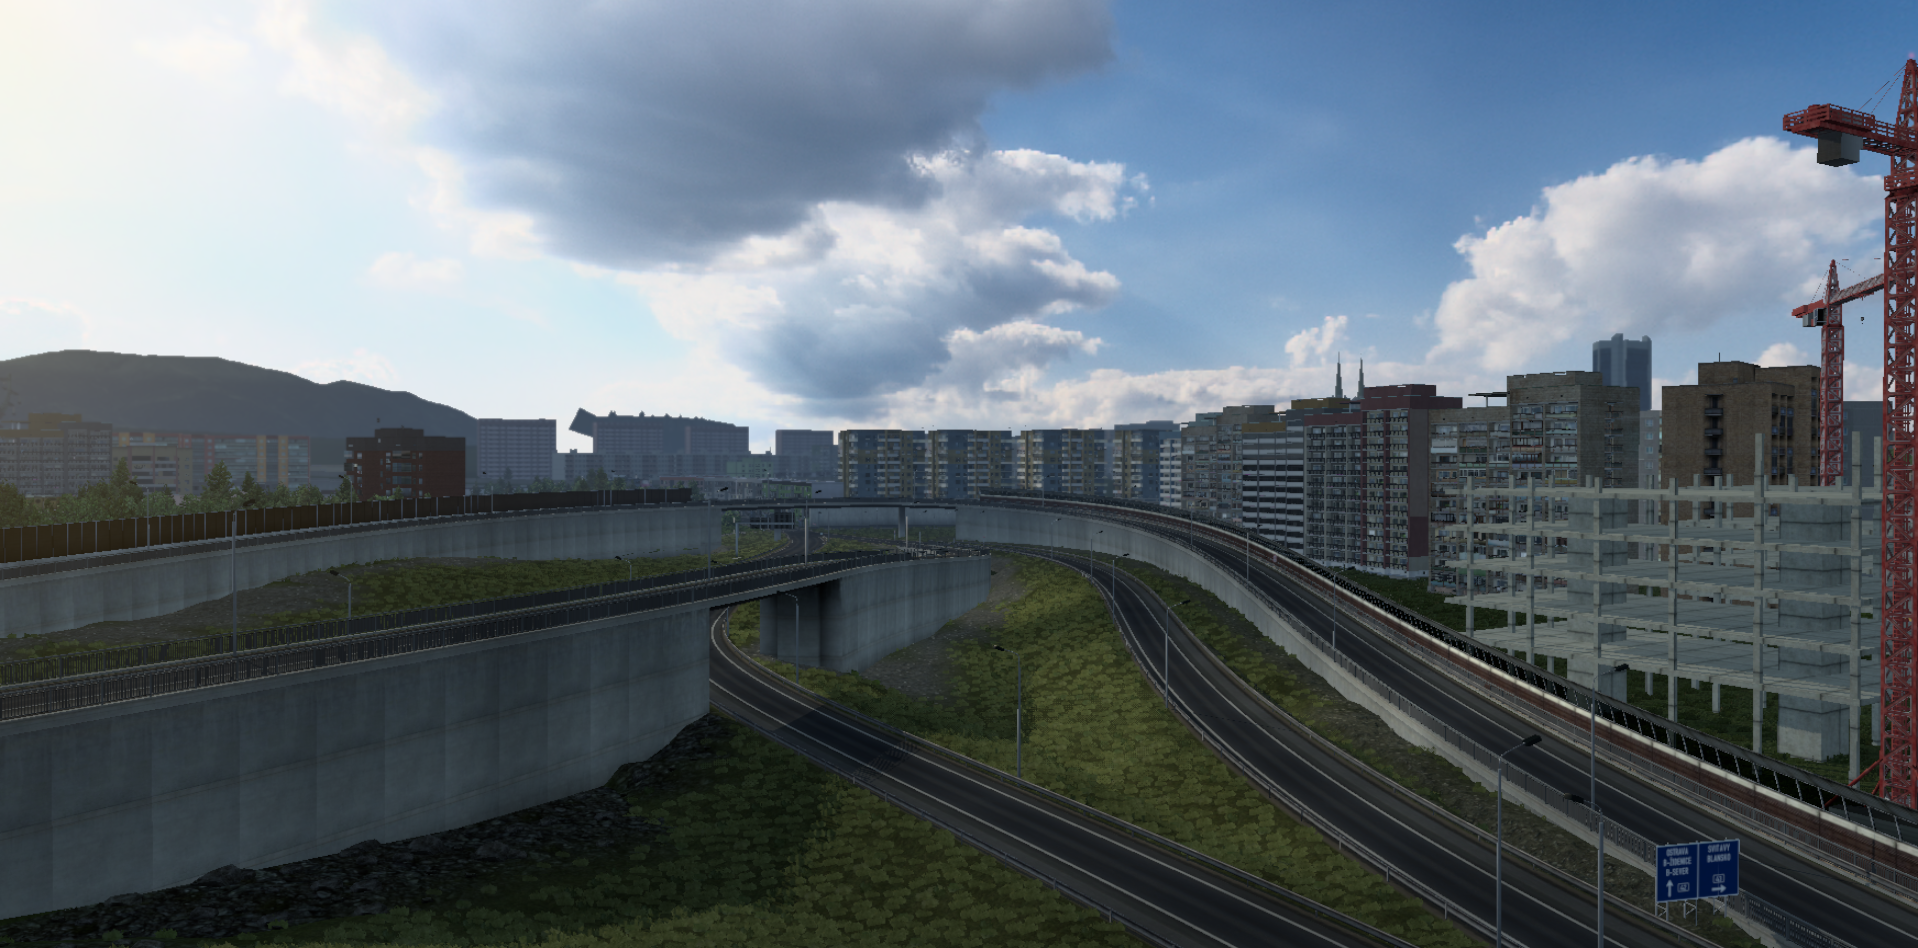 ets2_20210606_172510_00.png